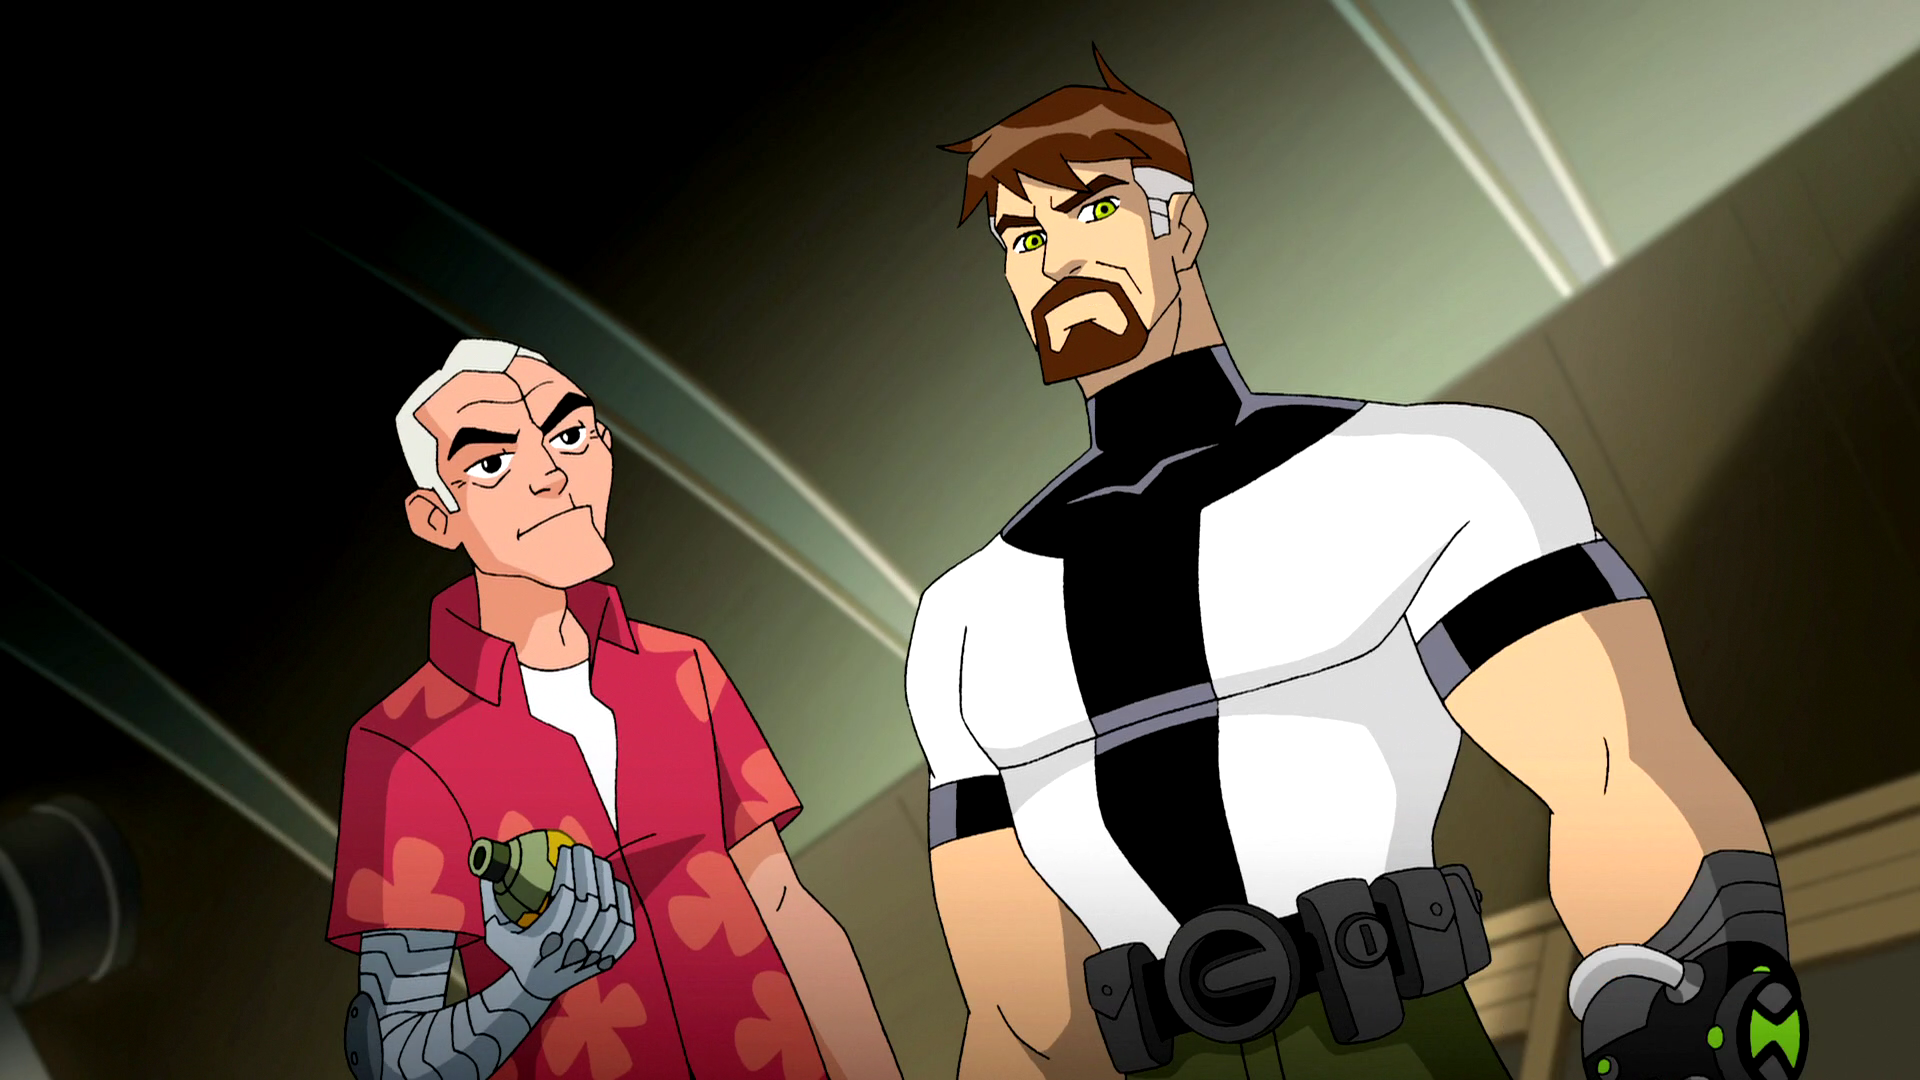 Ben 10 000 Of Ben 10 Ultimate Alien By Dlee1293847 On: Image - Ben 10,000 And Future Max 001.png